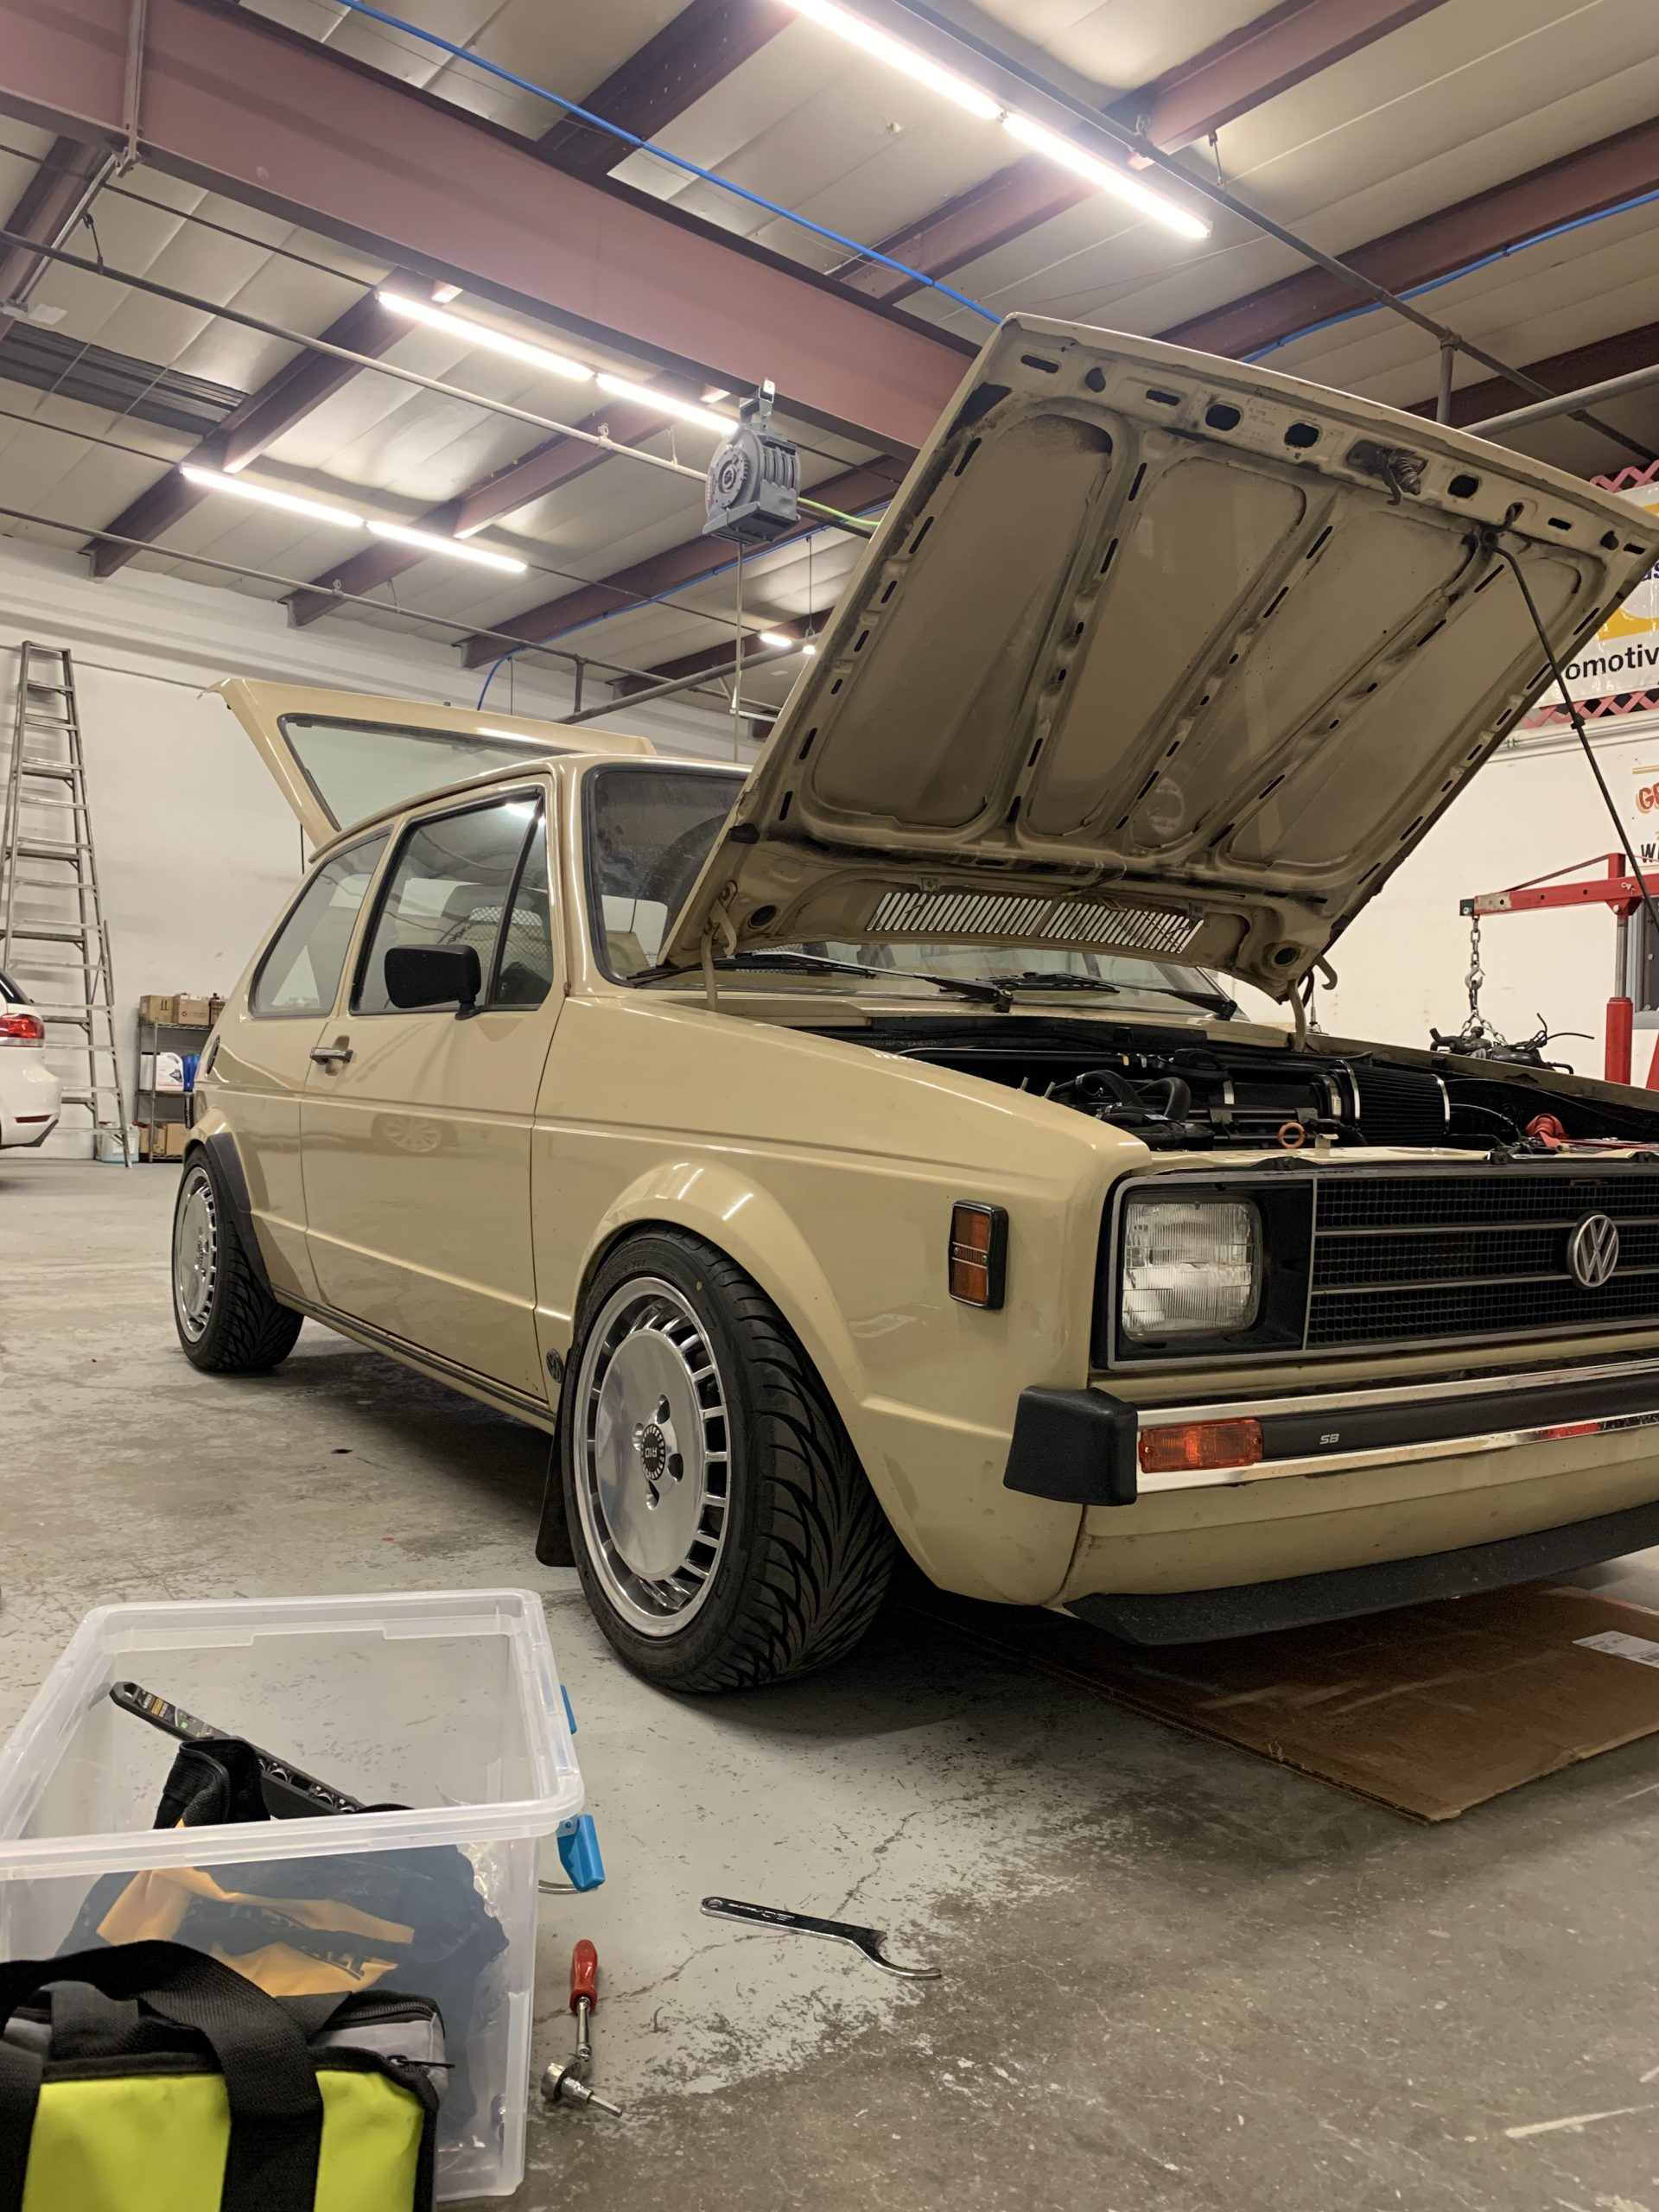 1980 VW Rabbit TDI swap shop Feb 27, 1 44 14 PM